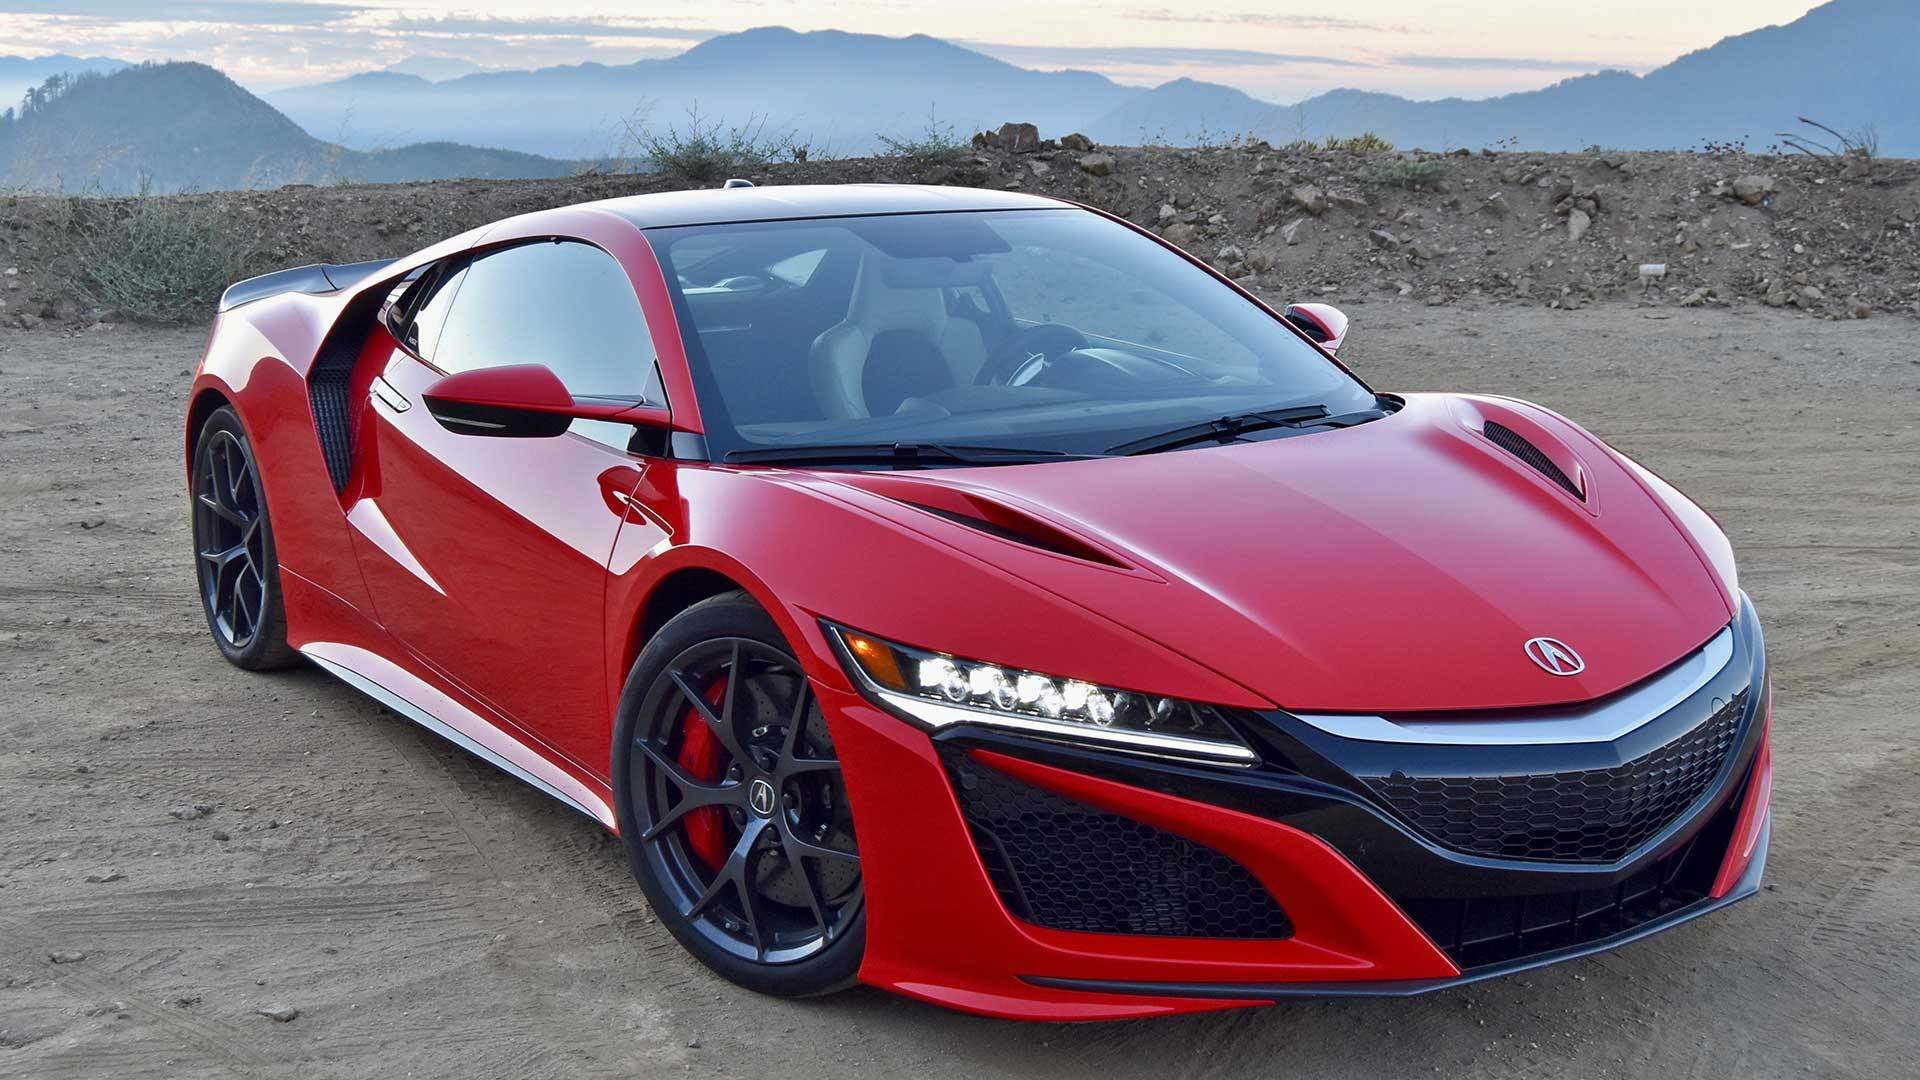 Latest The Acura Nsx On The Angeles Crest Highway Fulfilling A Free Download